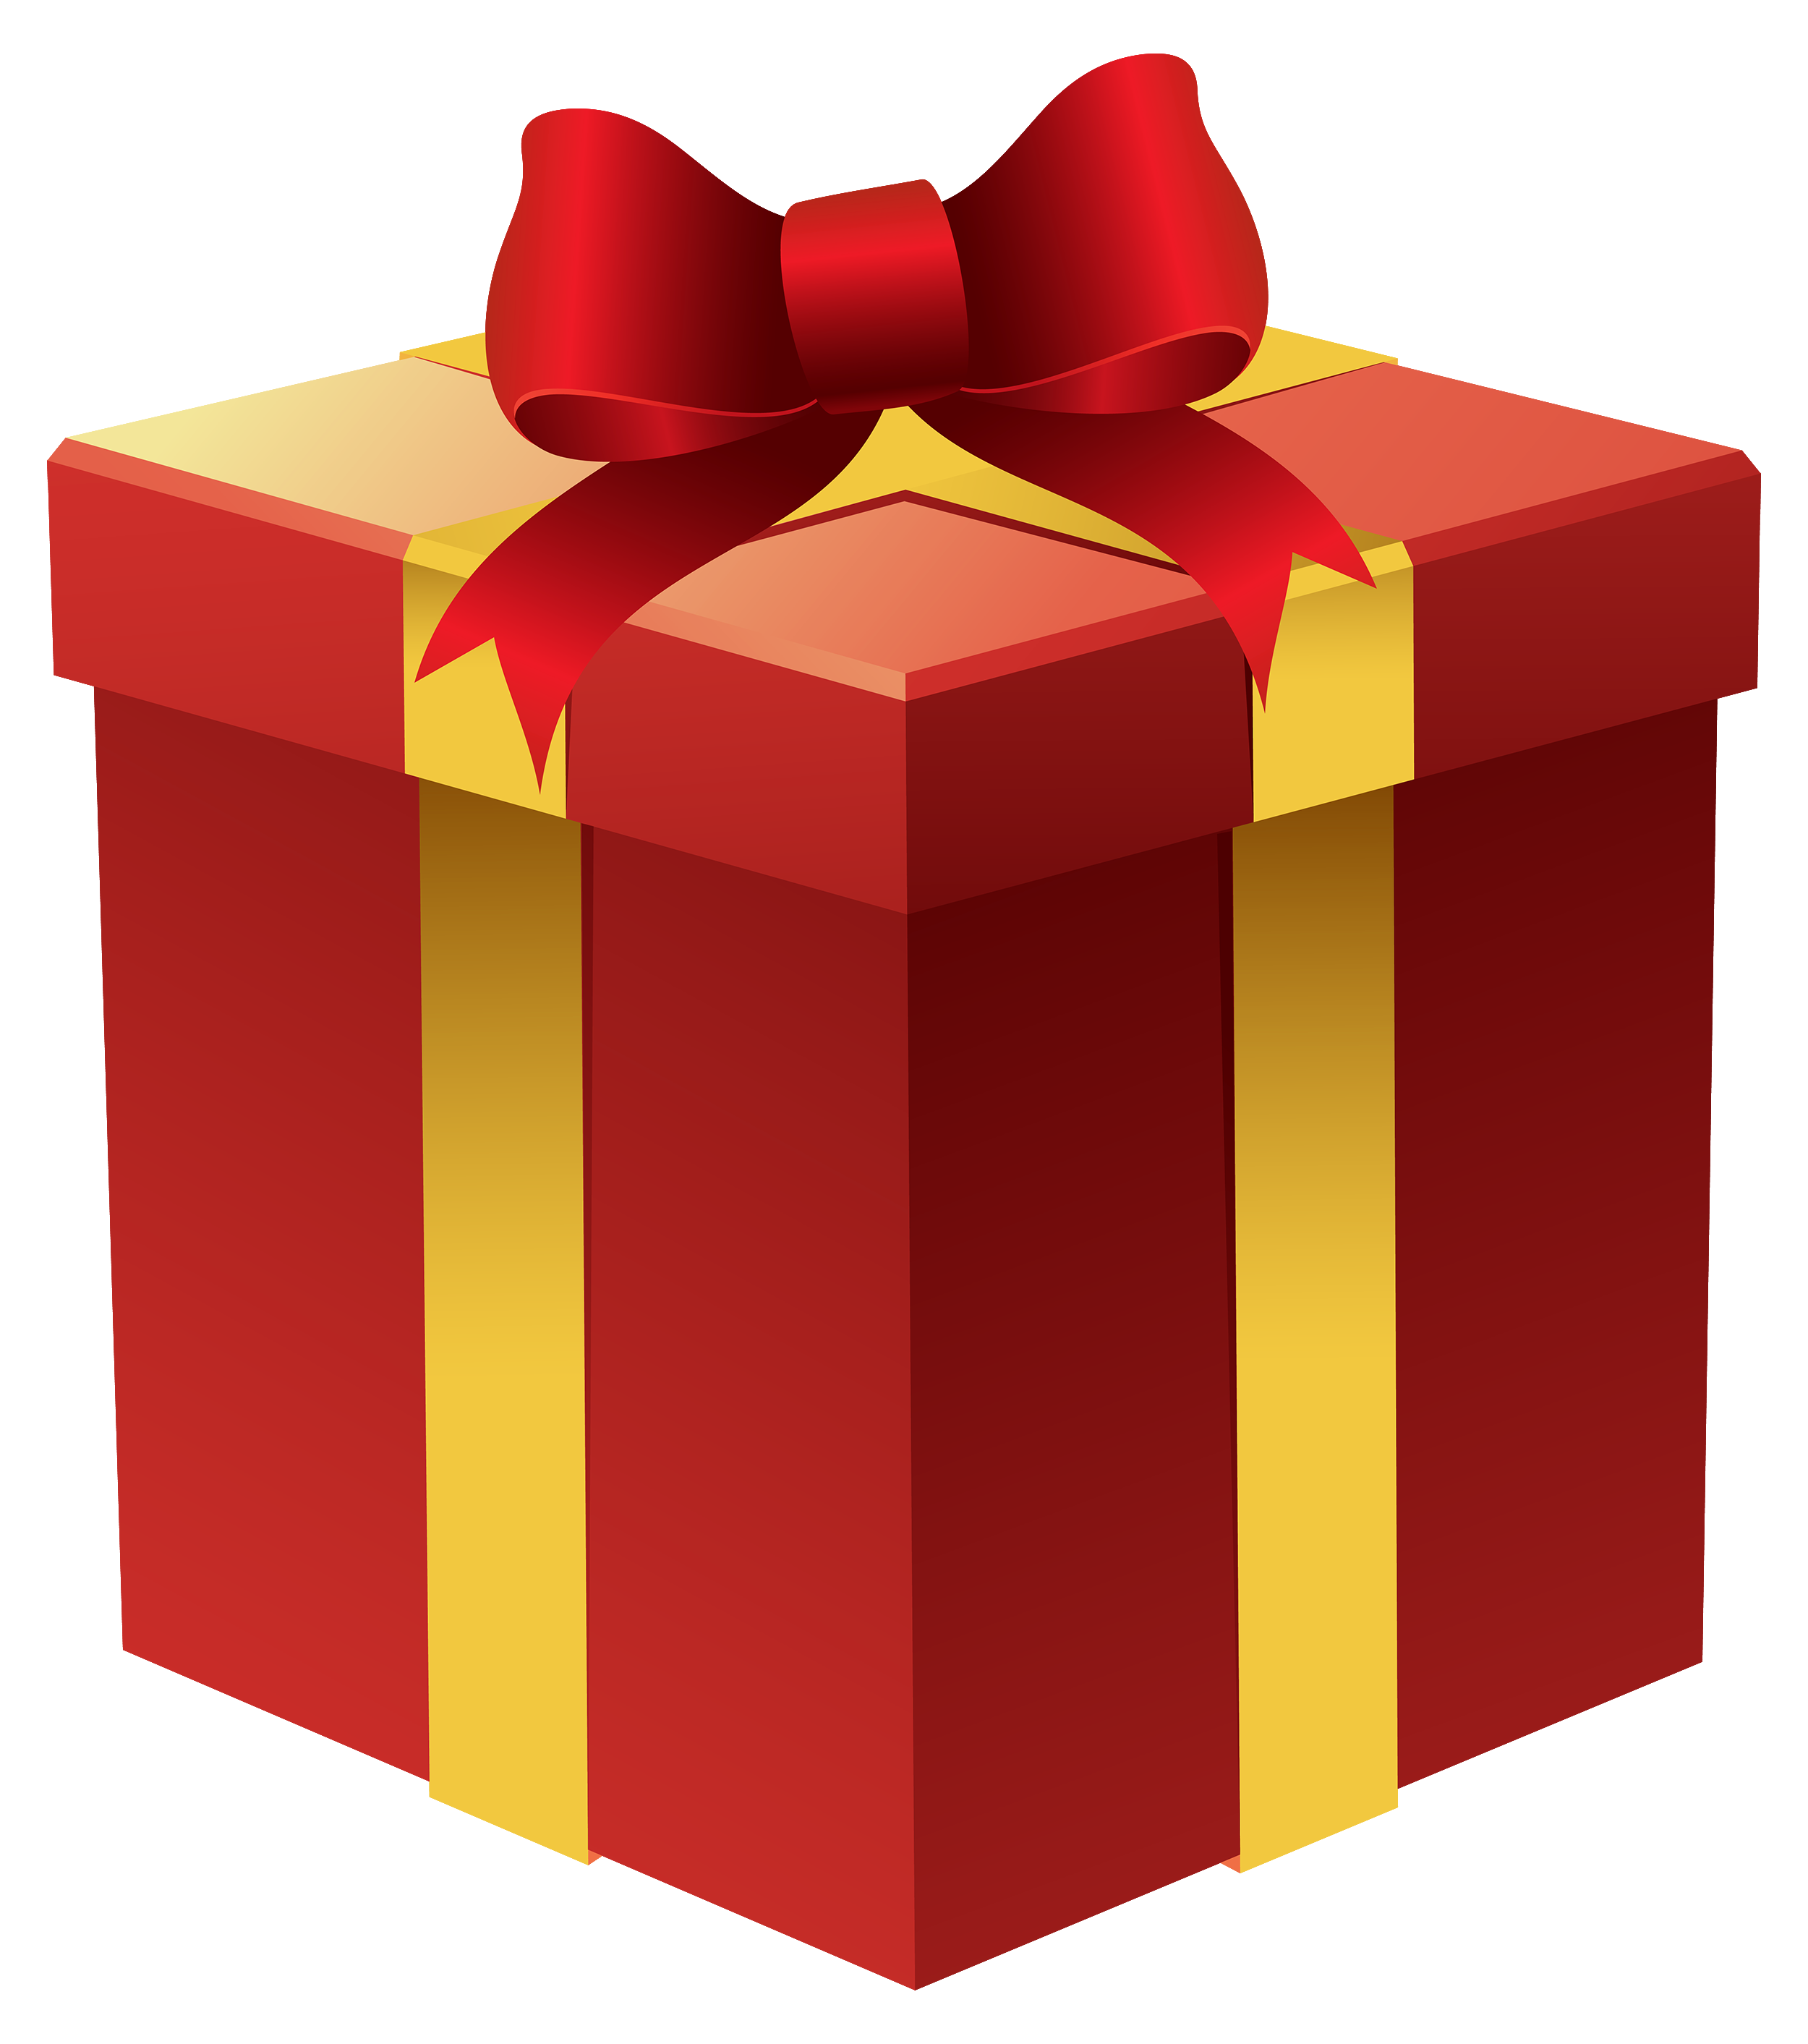 Gift clipart images - ClipartFest